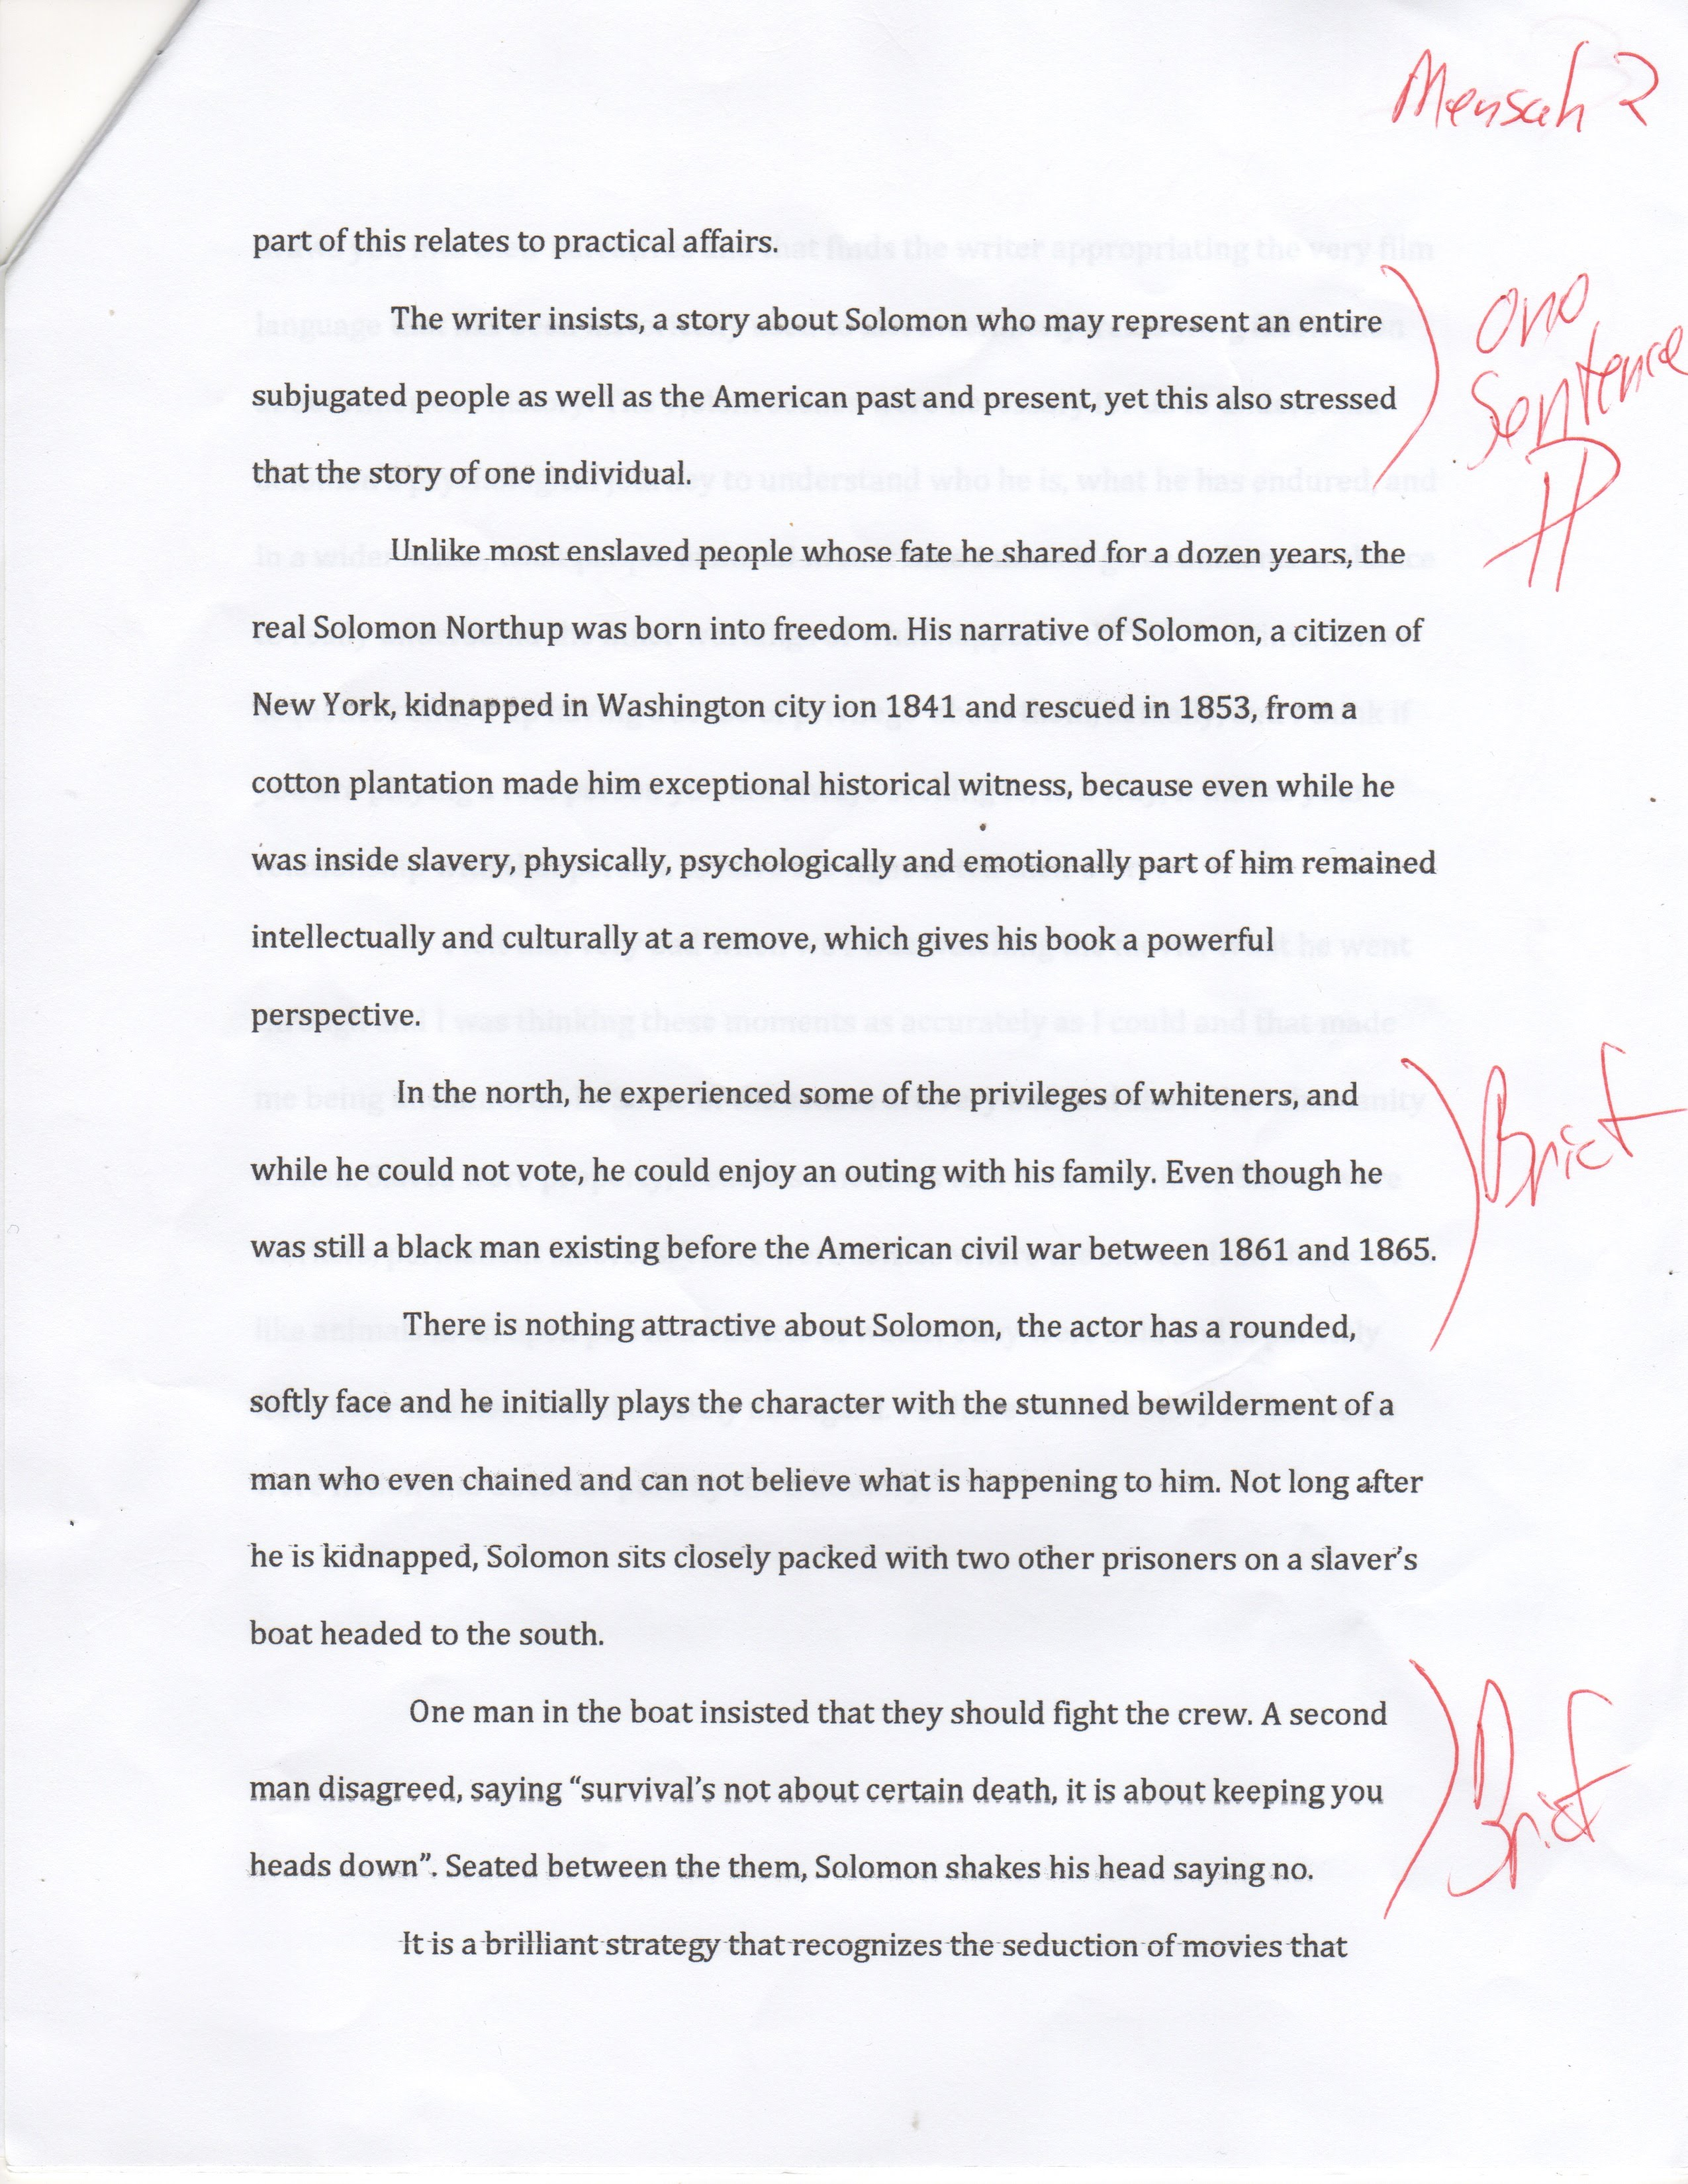 paper essay management and leadership paper essay sunsetsailstours research paper college essaysaugurio abeto essays on the great